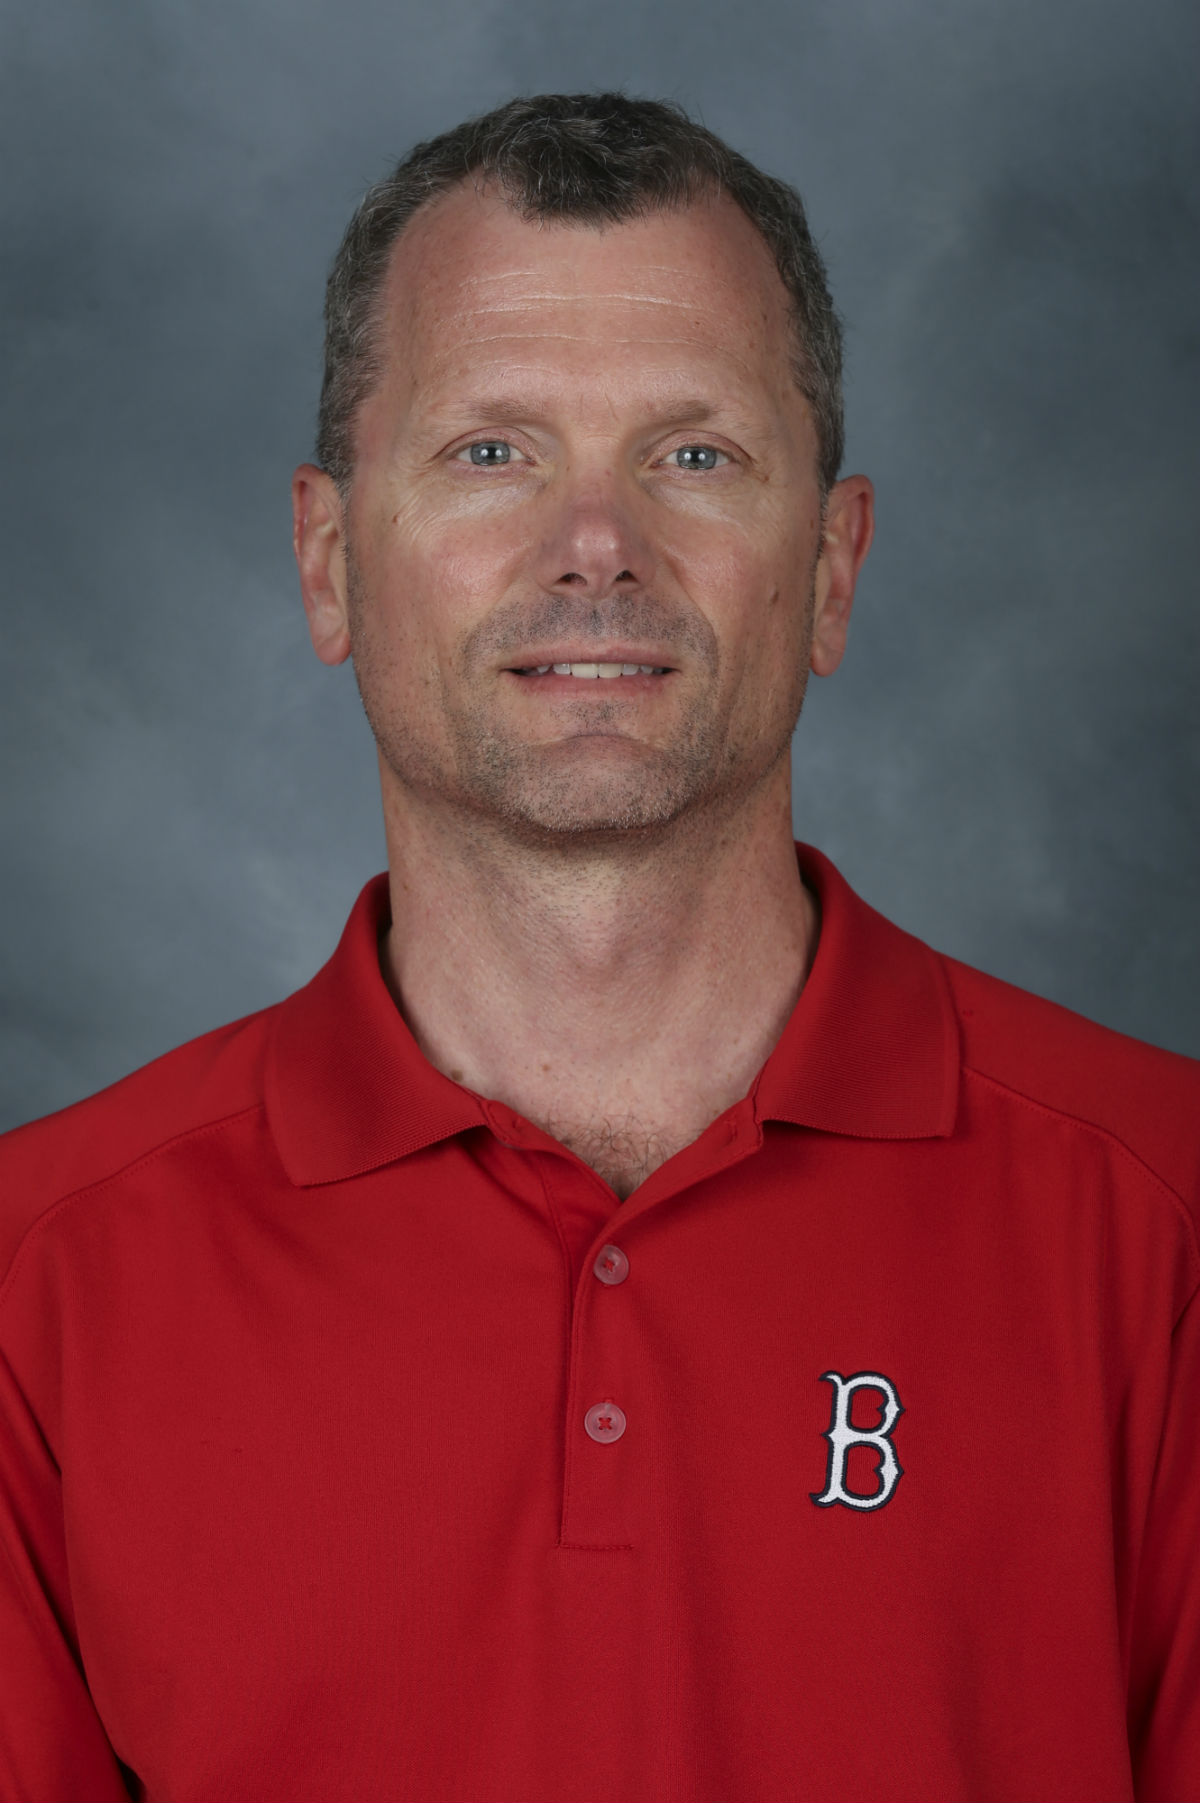 Boston Red Sox Major League Physical Therapist and Clinical Assistant Professor Dr. Ray Mattfeld